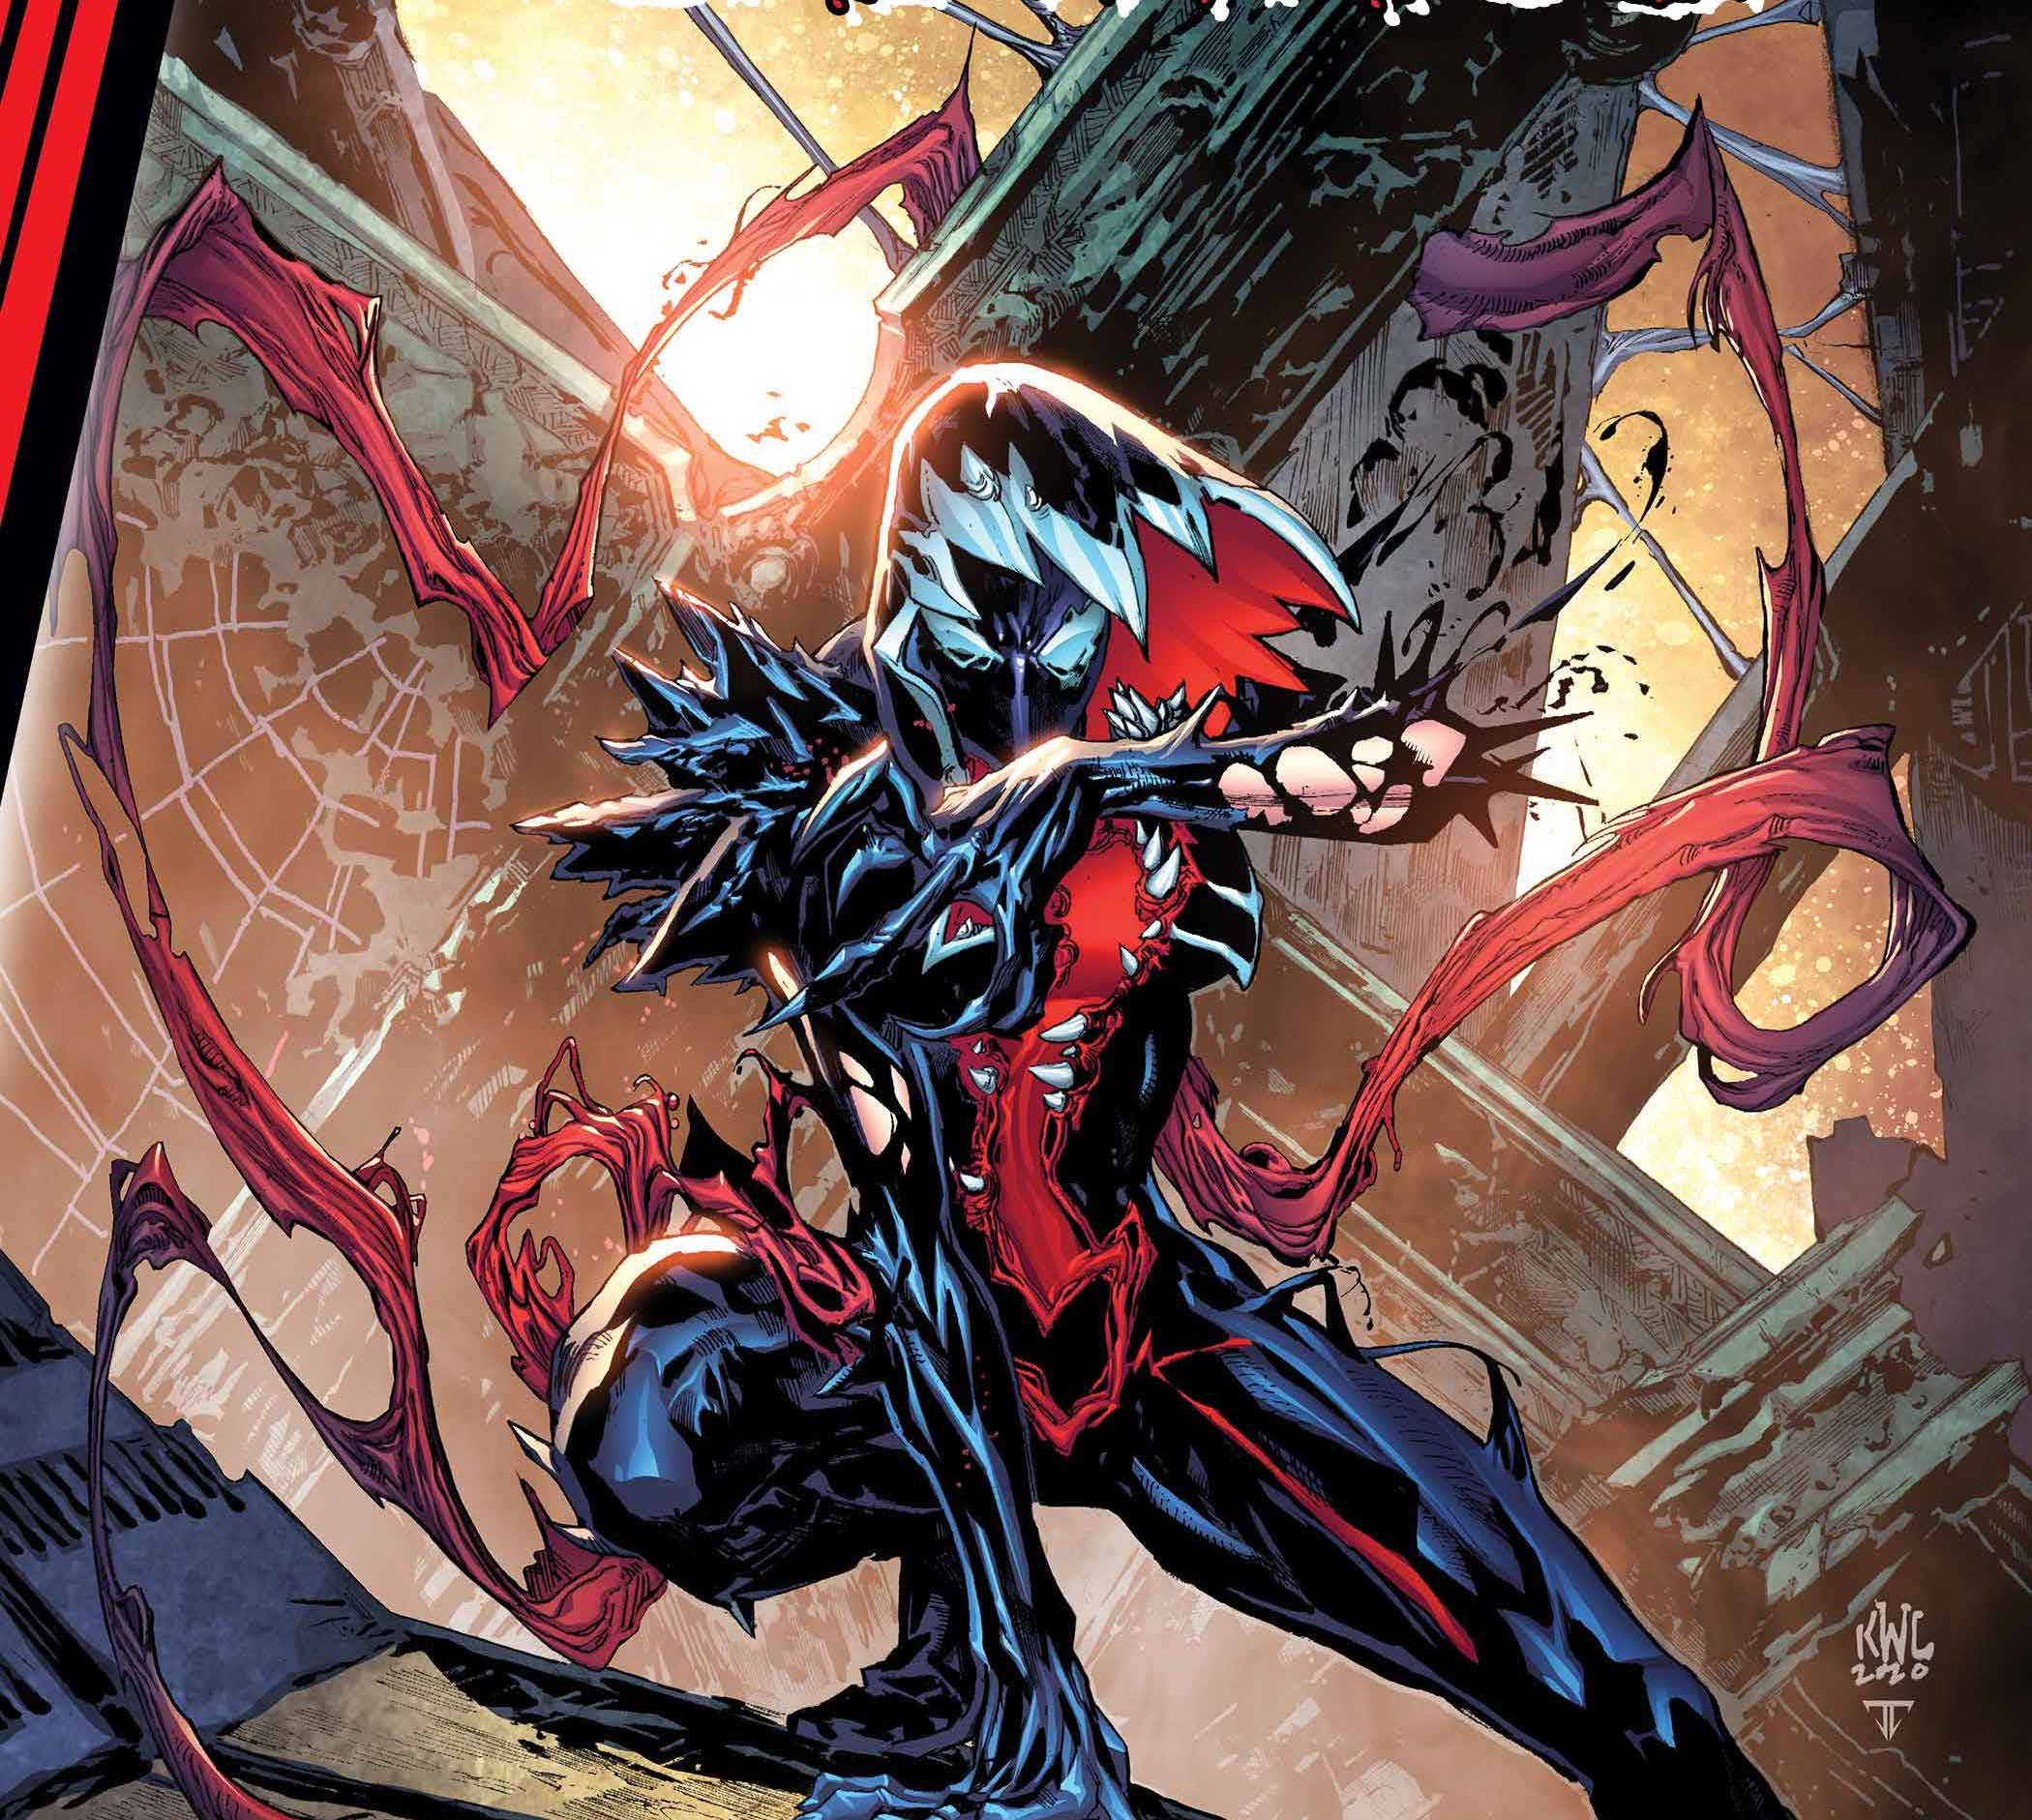 'King in Black' pits Gwenom vs. Carnage from Seanan McGuire and Flaviano